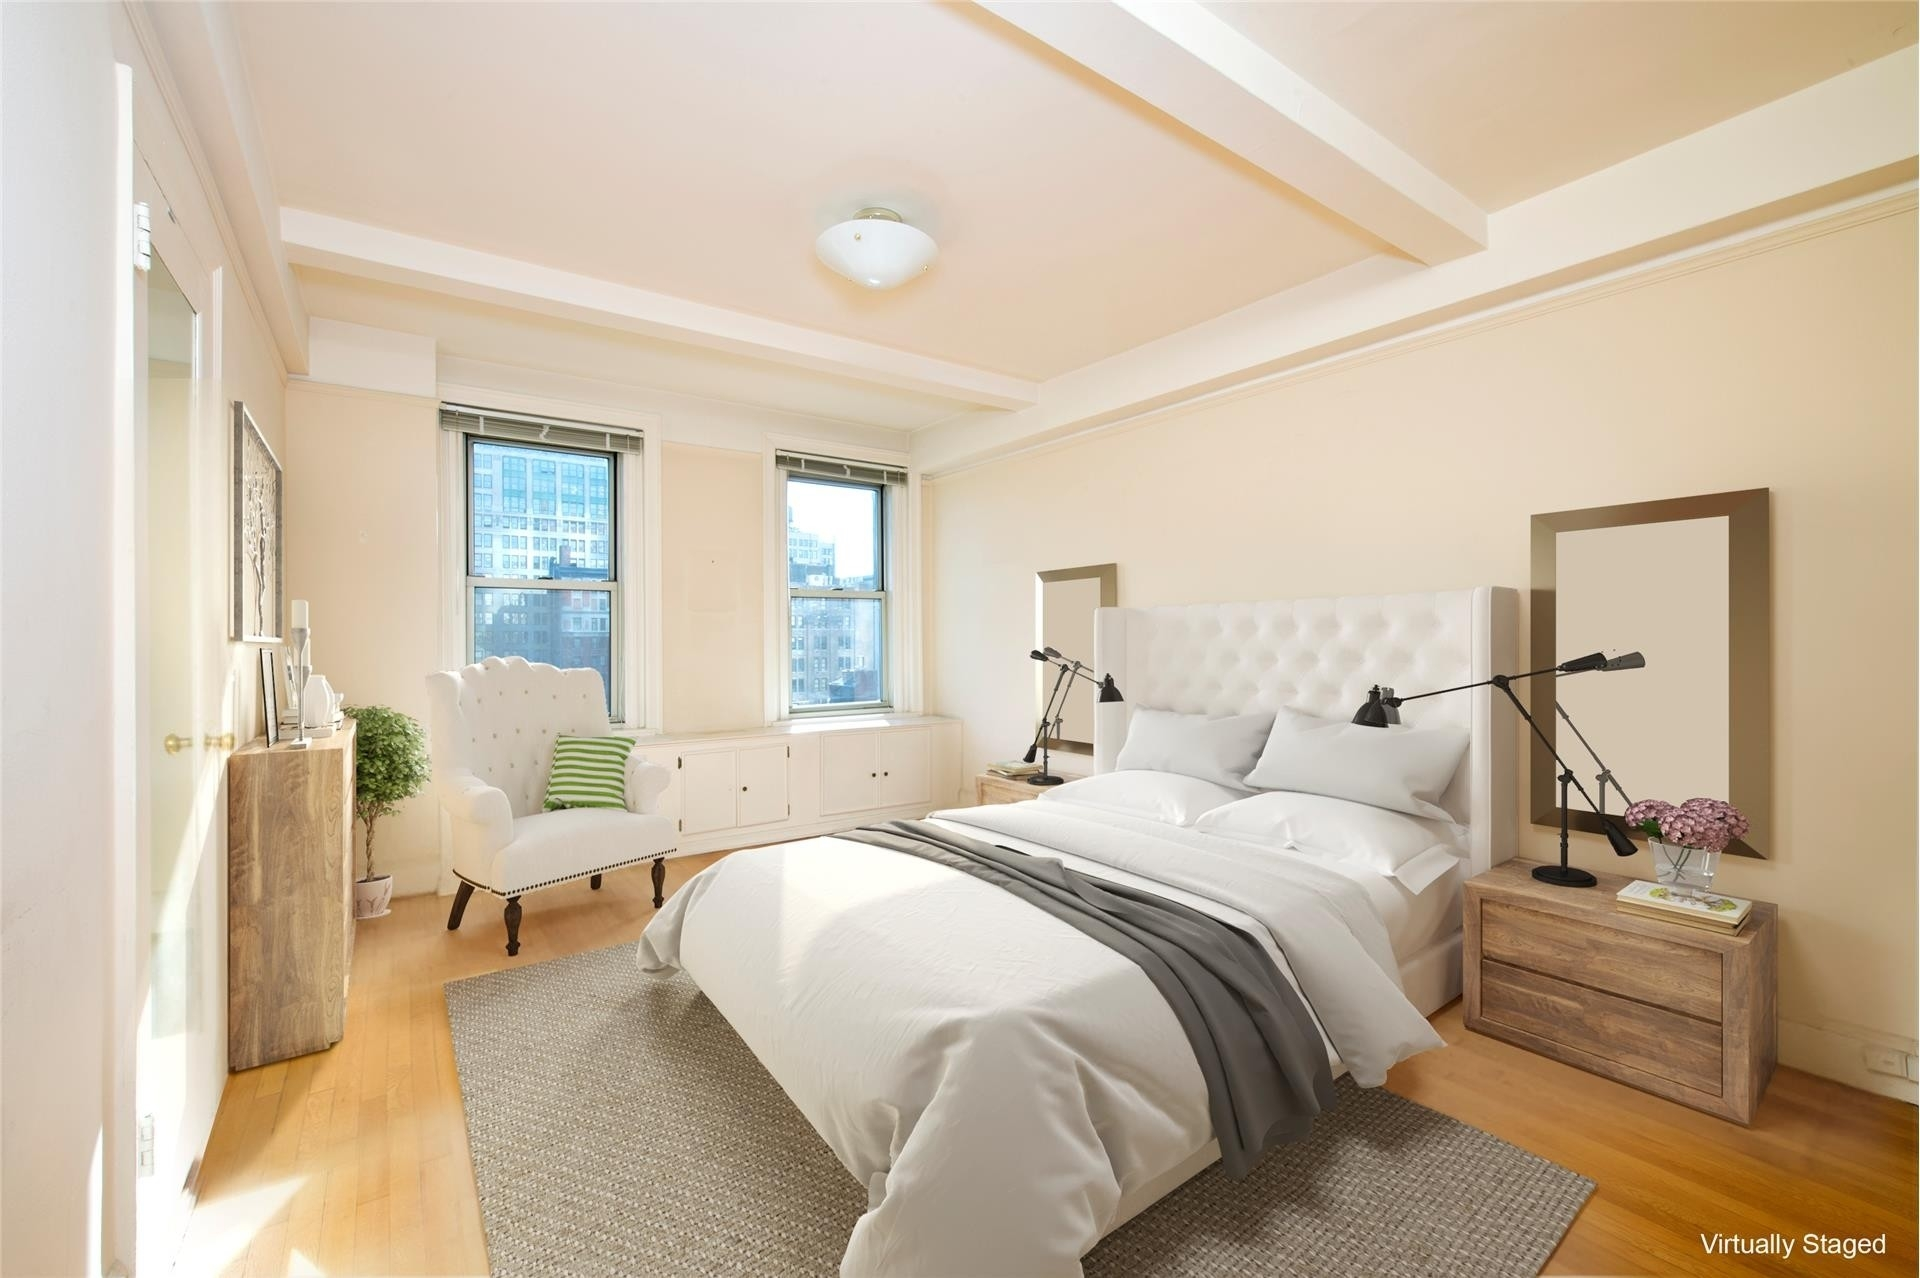 5. Gramercy Park Resid. Corp. здание в 60 Gramercy Park North, Gramercy Park, New York, NY